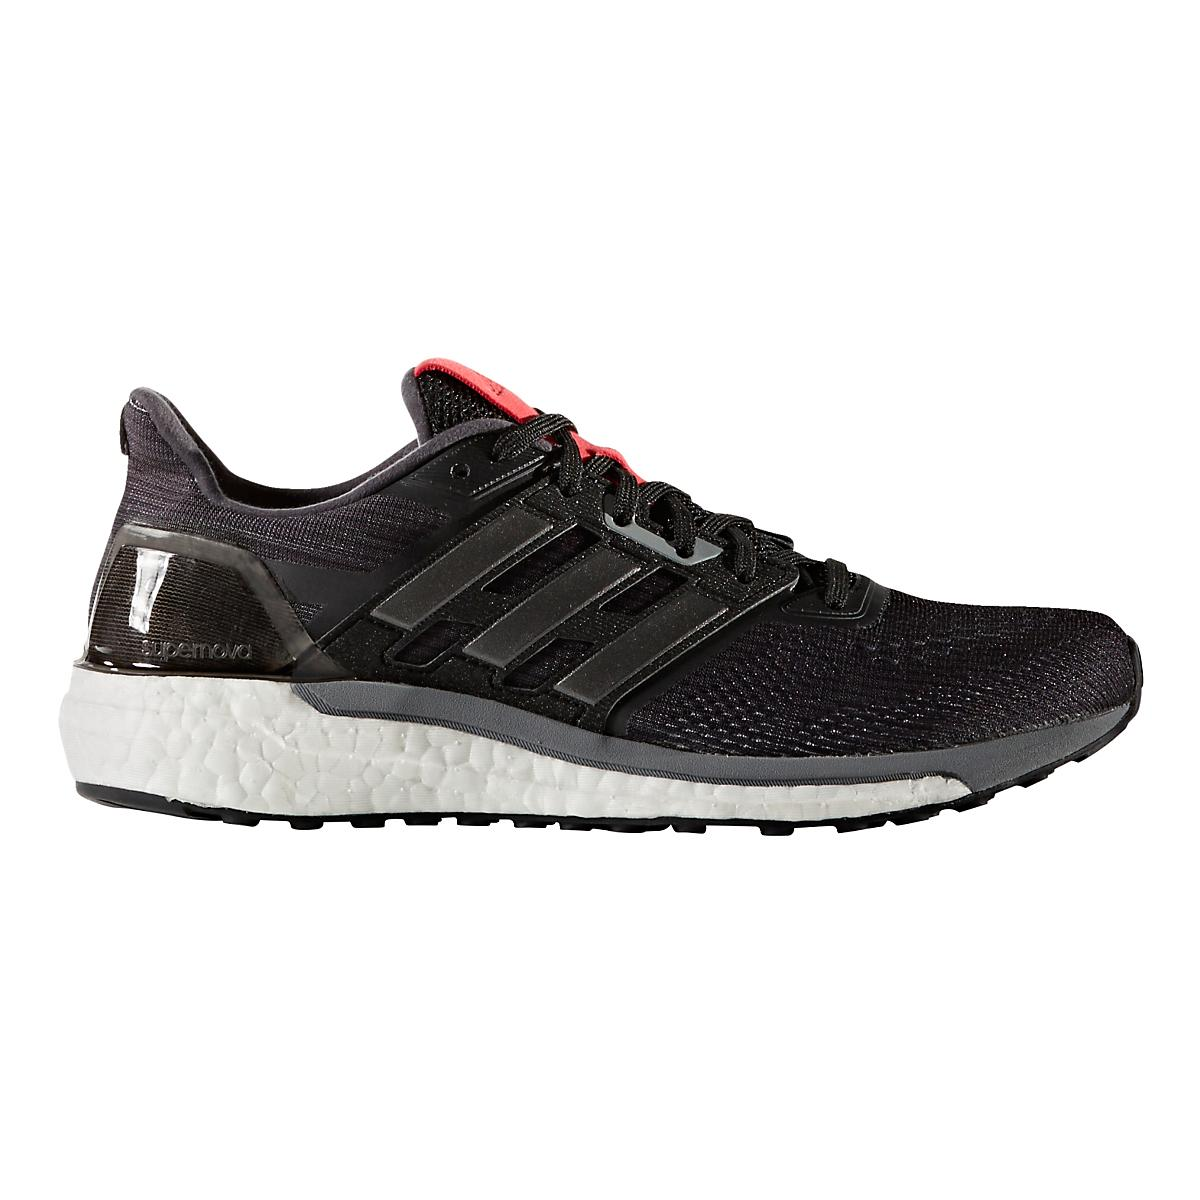 1233332fbfeb6 Womens adidas Supernova Running Shoe at Road Runner Sports